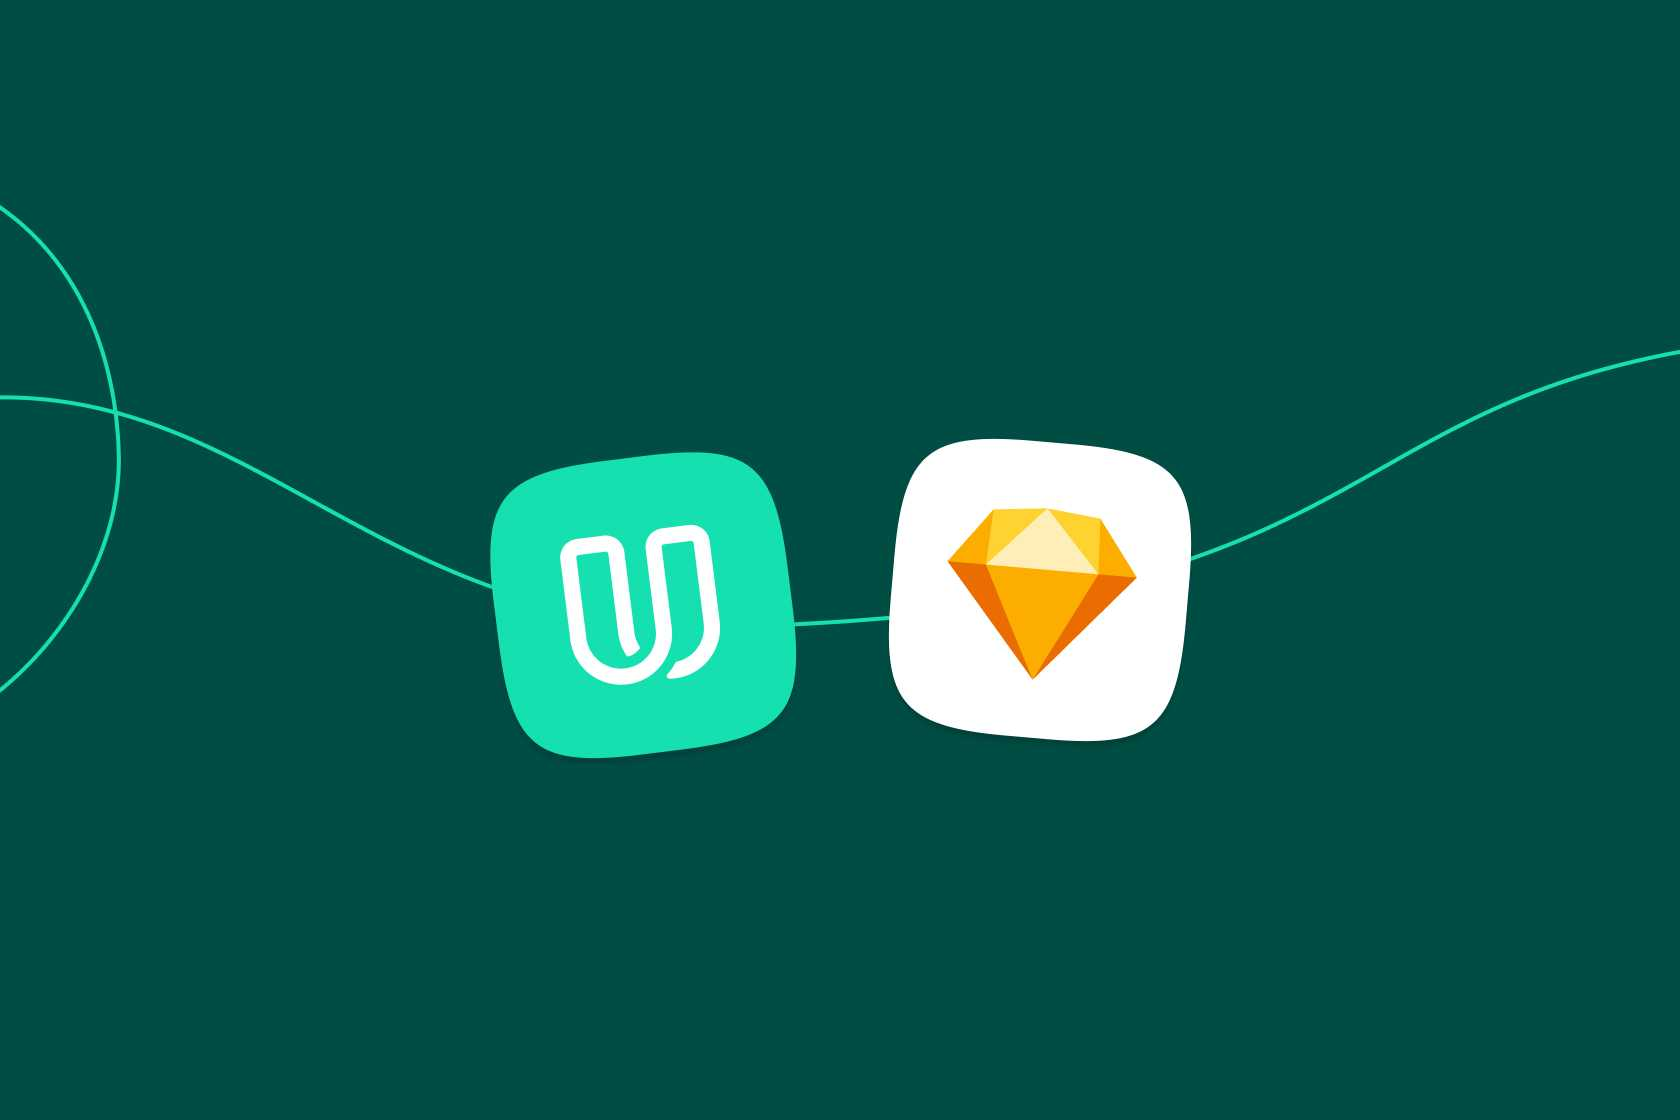 Userbrain and Sketch